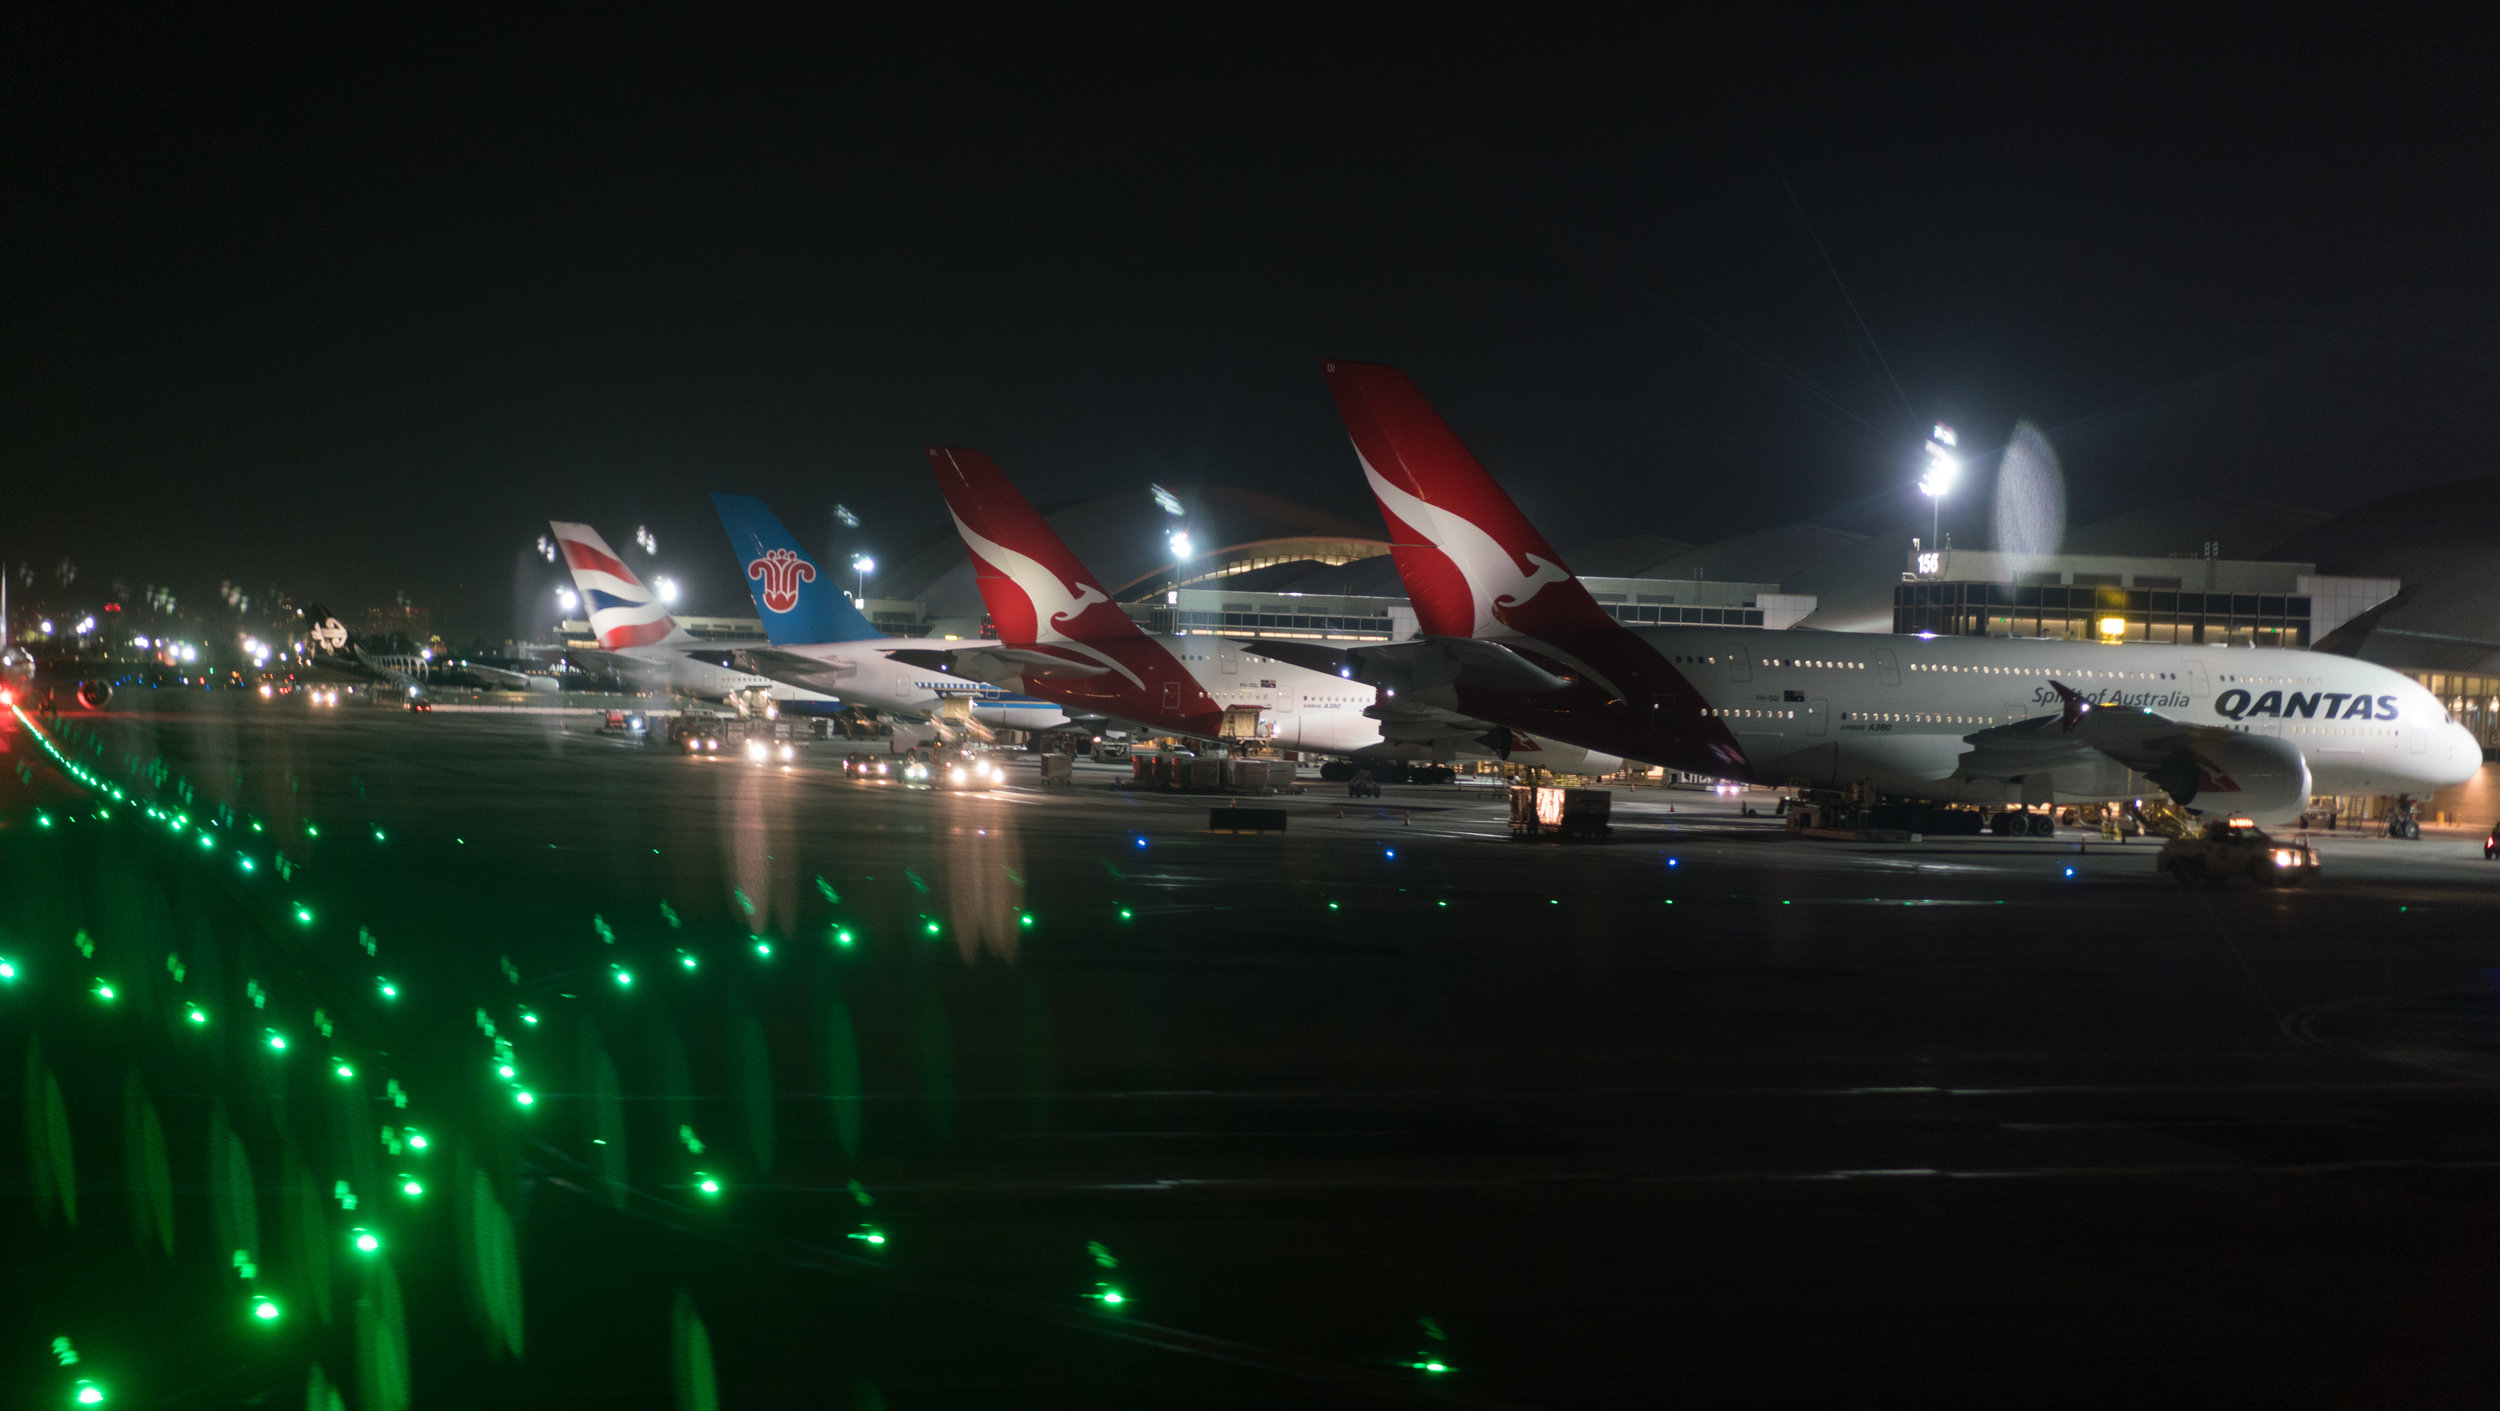 Those Qantas A380s at Los Angeles are some of my favorite rides.